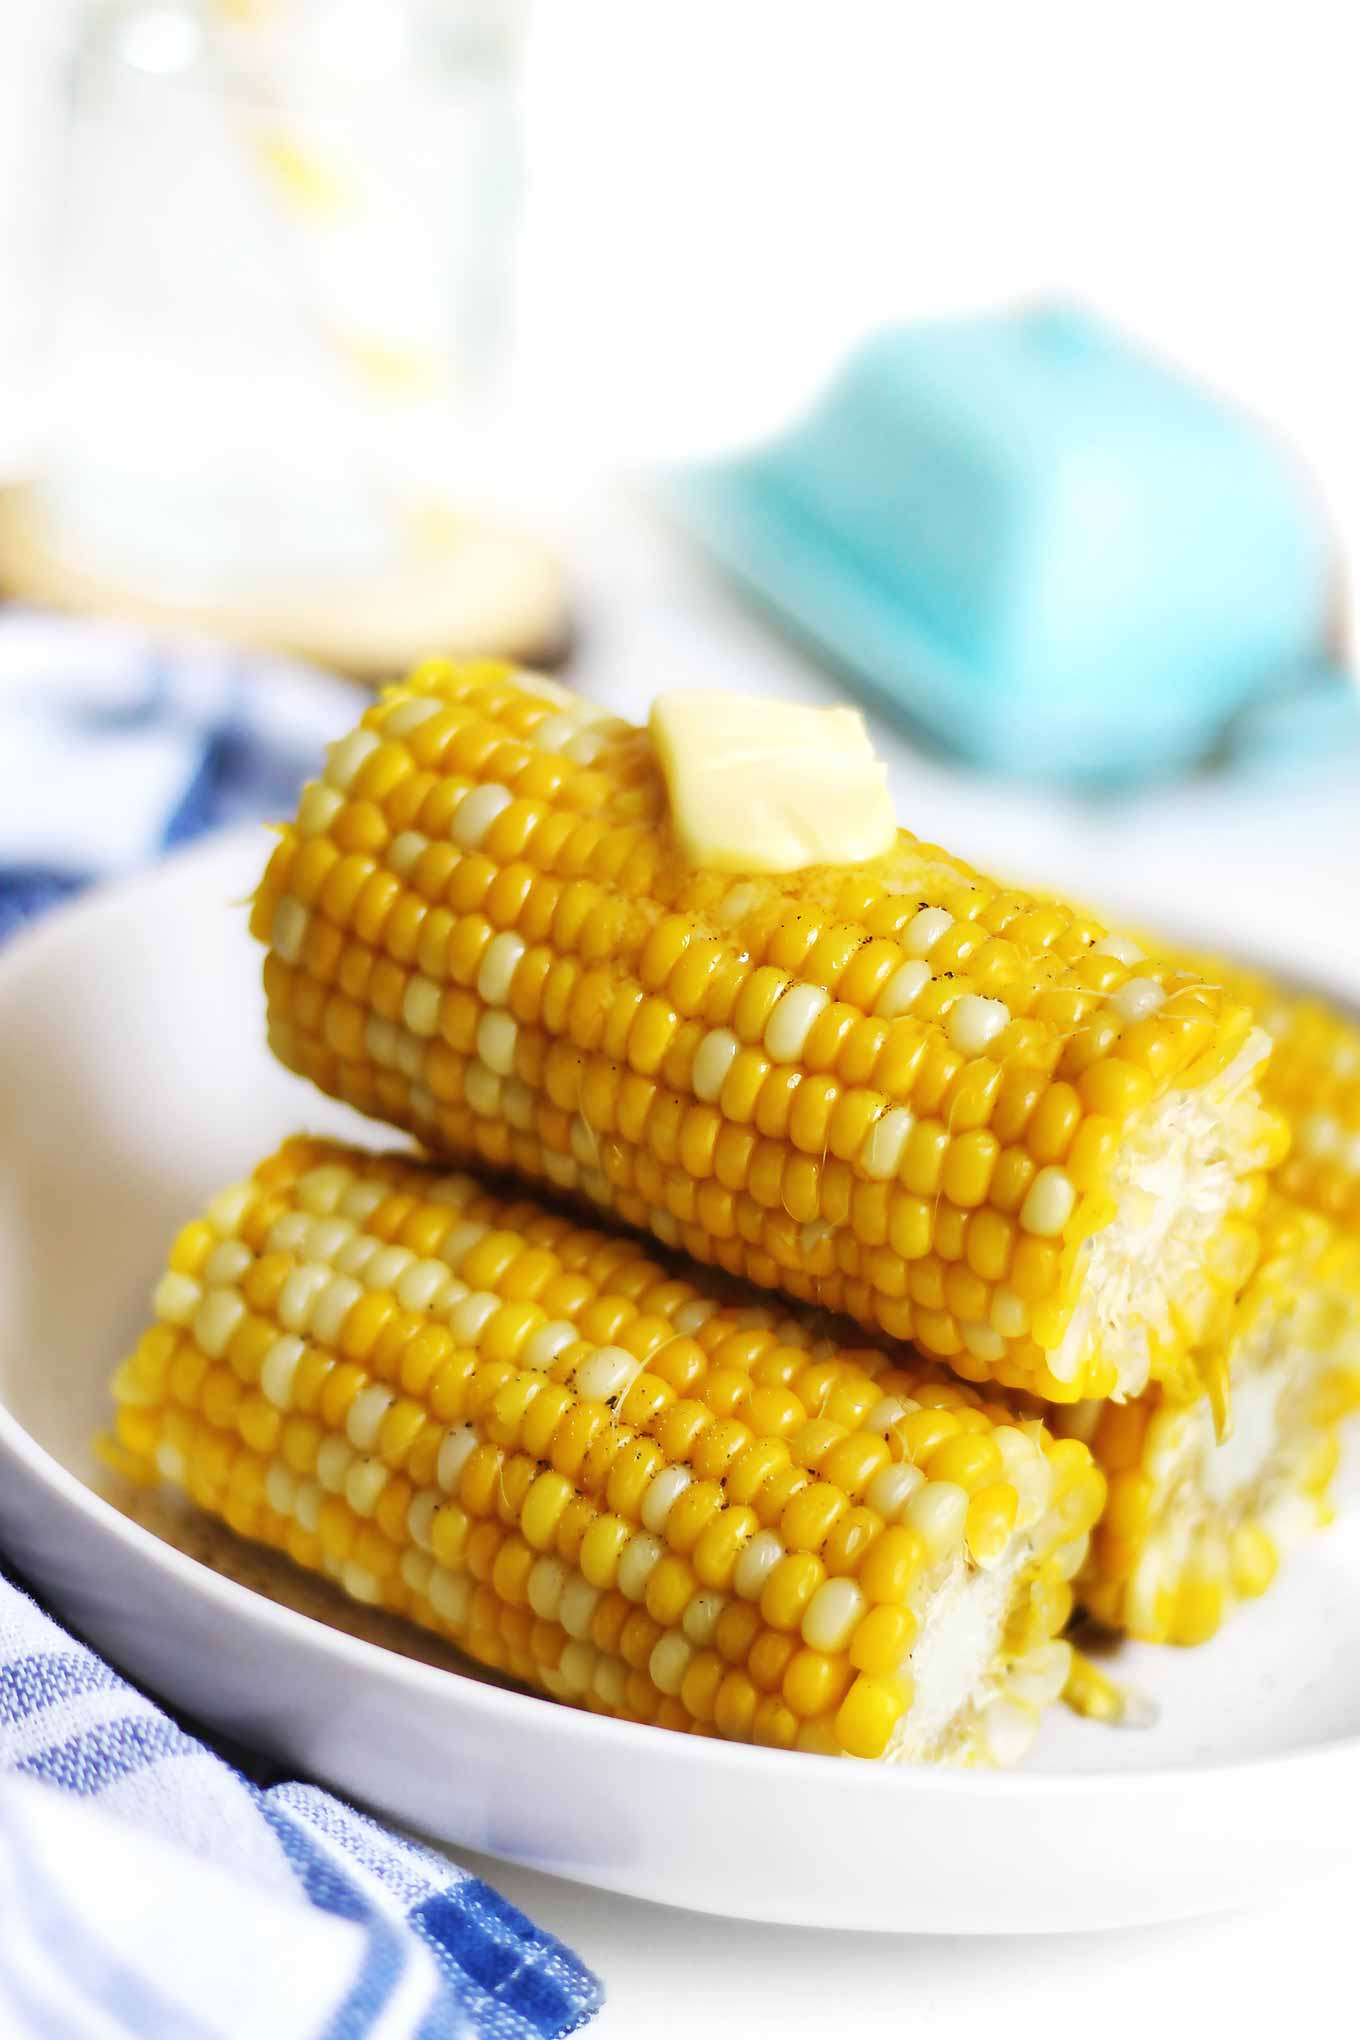 corn on the cob with butter